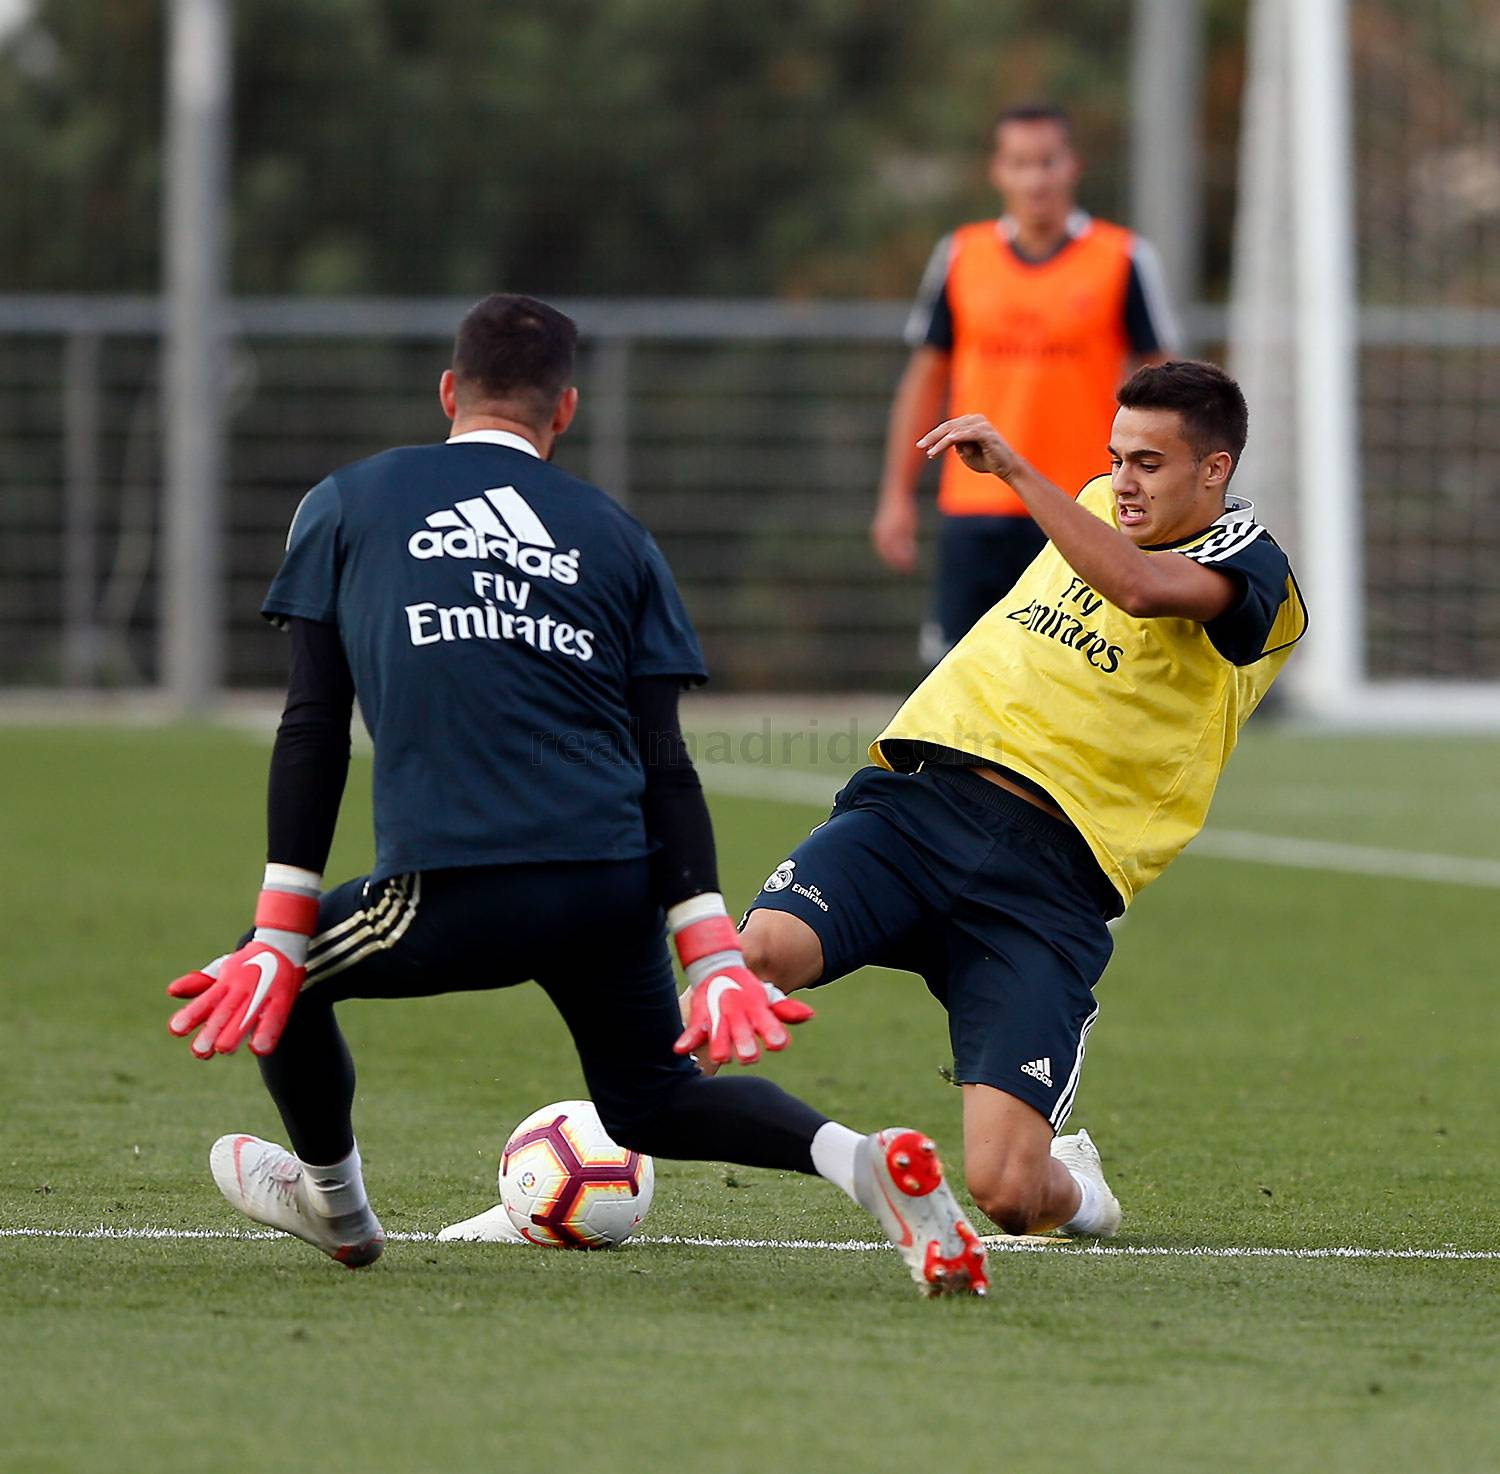 Real Madrid - Entrenamiento del Real Madrid - 09-10-2018